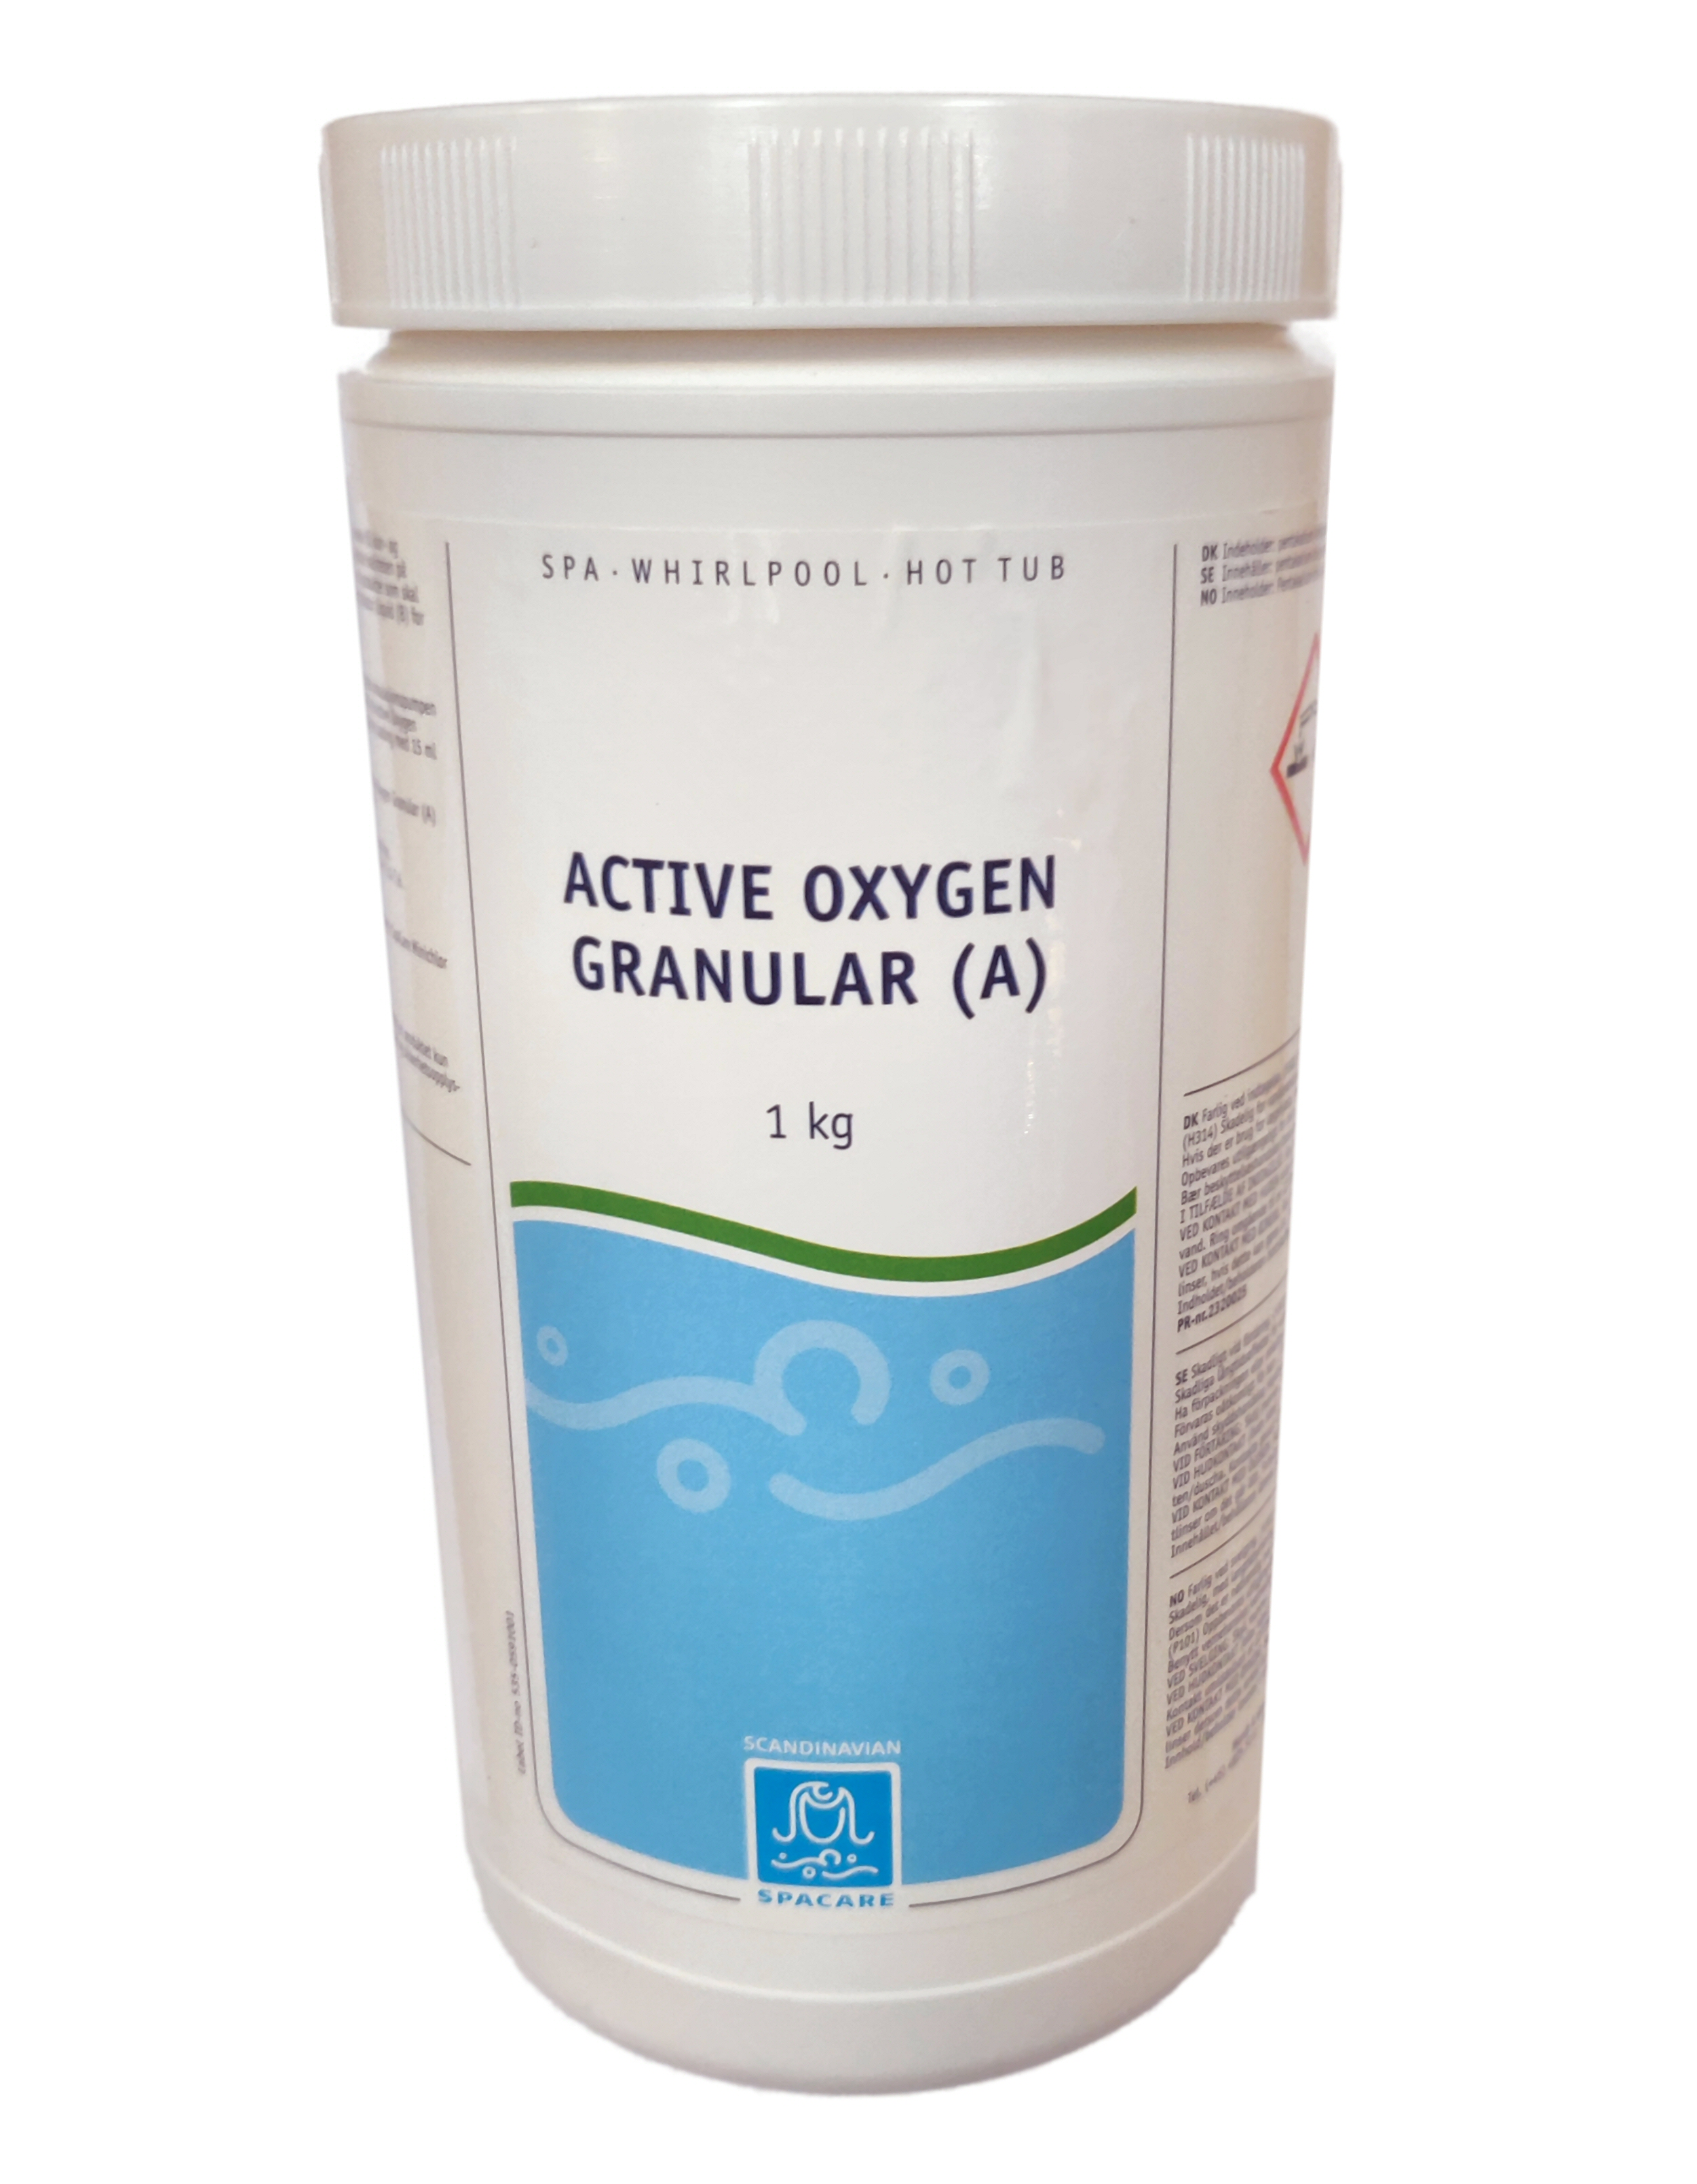 SpaCare Active Oxygen Granular (A)